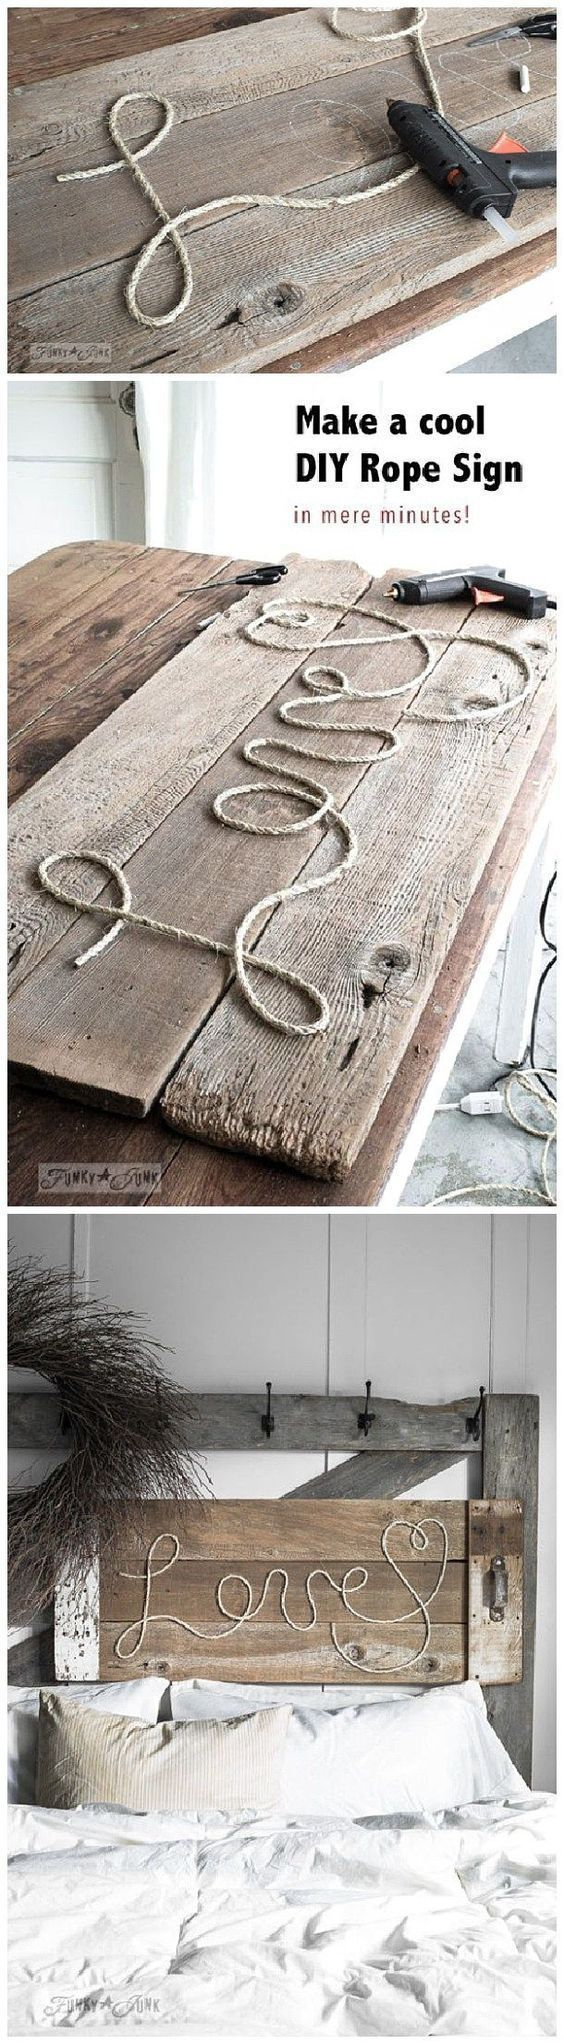 Make a cool DIY Rope Sign like this one… in minutes! So cool, cheap and fun to